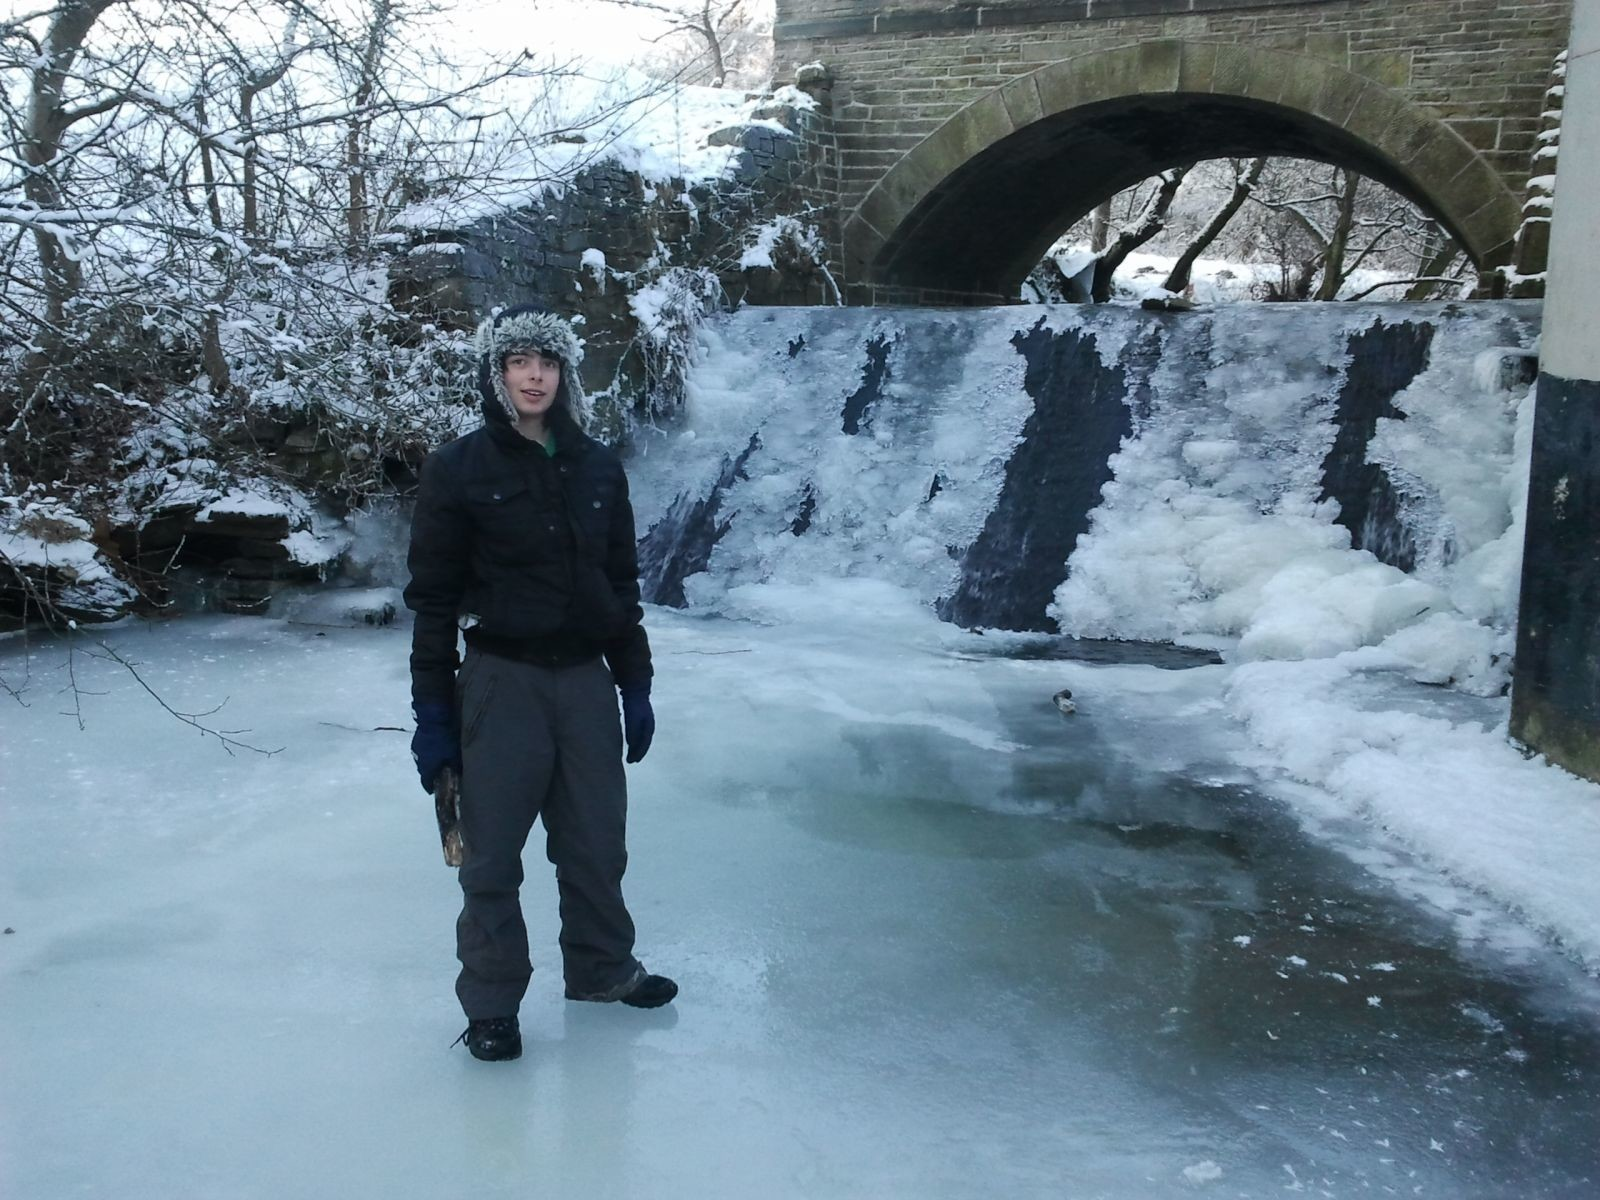 Frozen river/waterfall